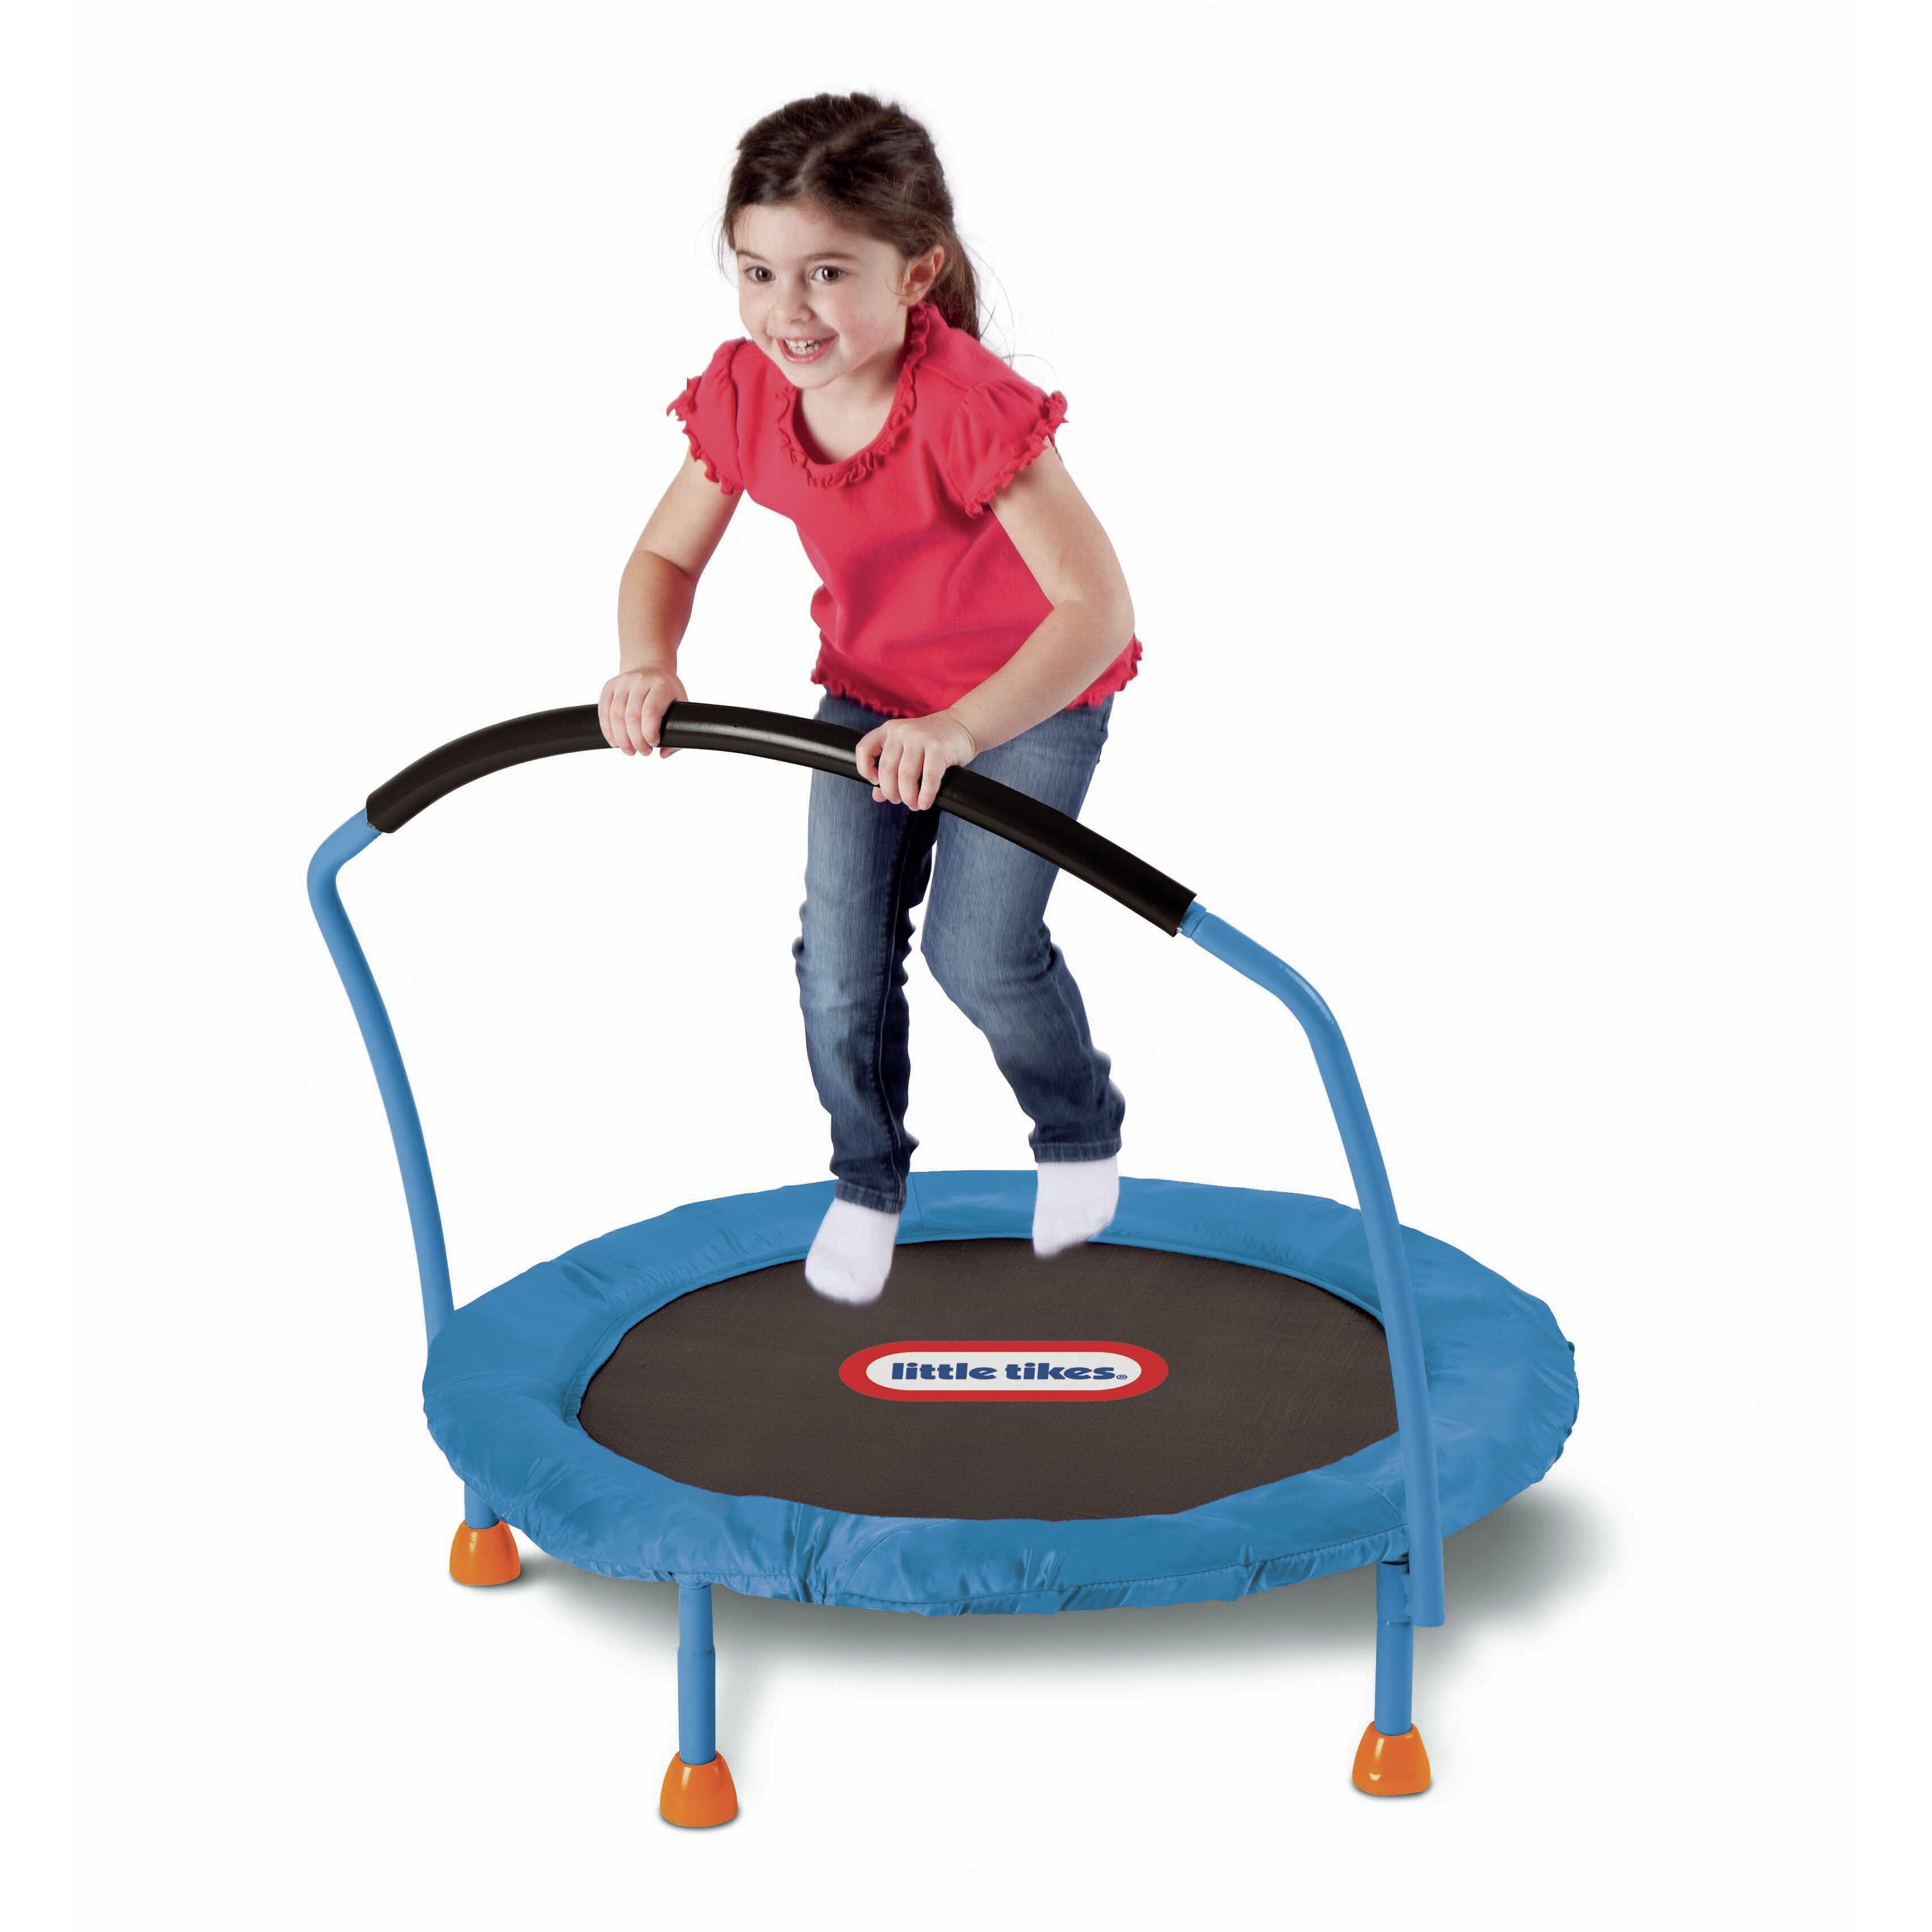 This Little Tikes 3-foot kid's trampoline is the perfect size to provide hours of bouncing fun! Little Tikes knows it's important for kids to stay active. This Little Tikes 3-foot trampoline is the perfect size to provide hours of bouncing fun.